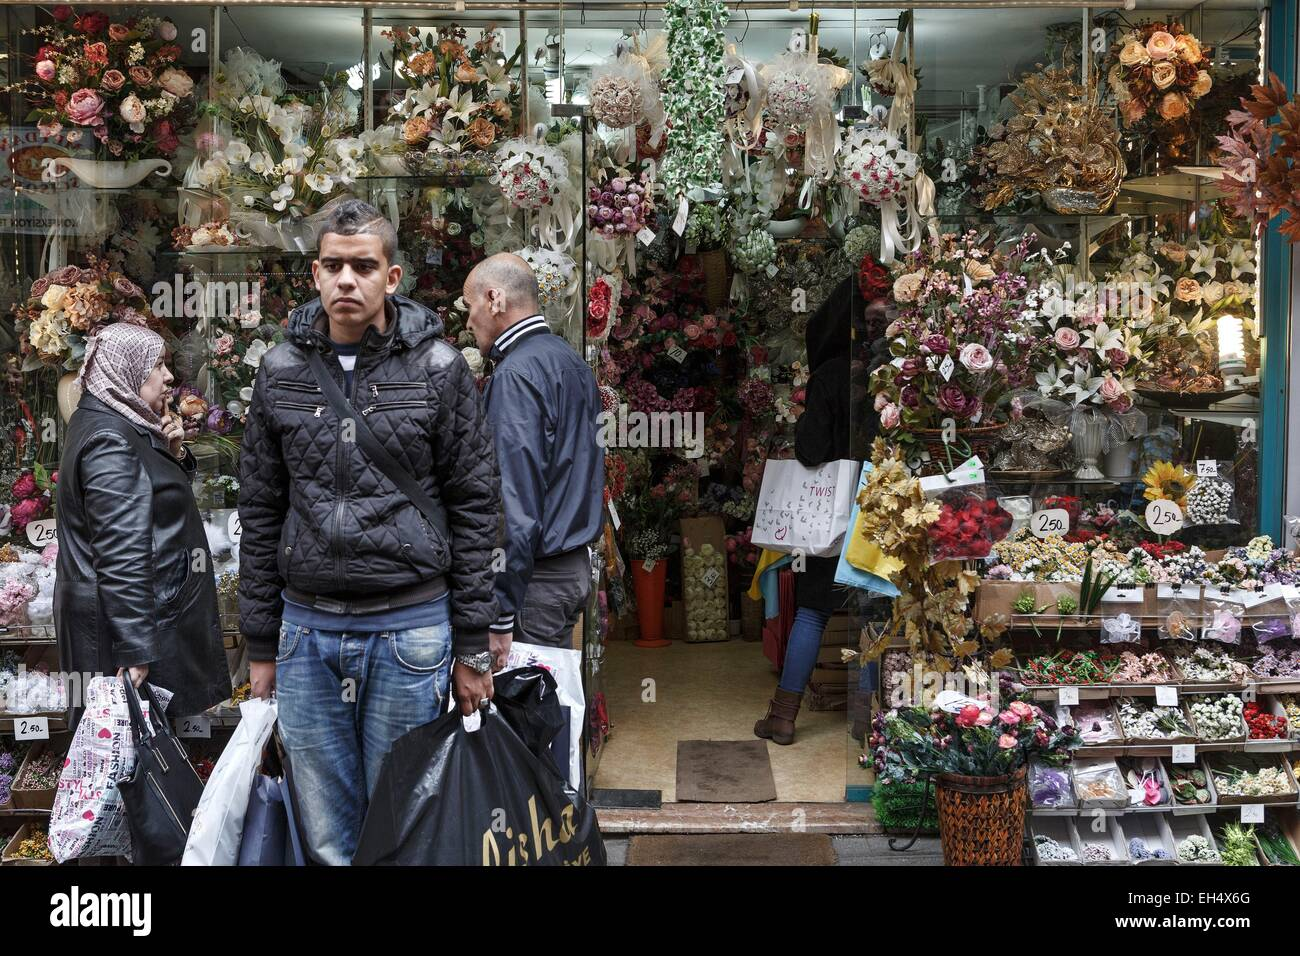 Turkey, Istanbul, Mercan, clients in a florist - Stock Image